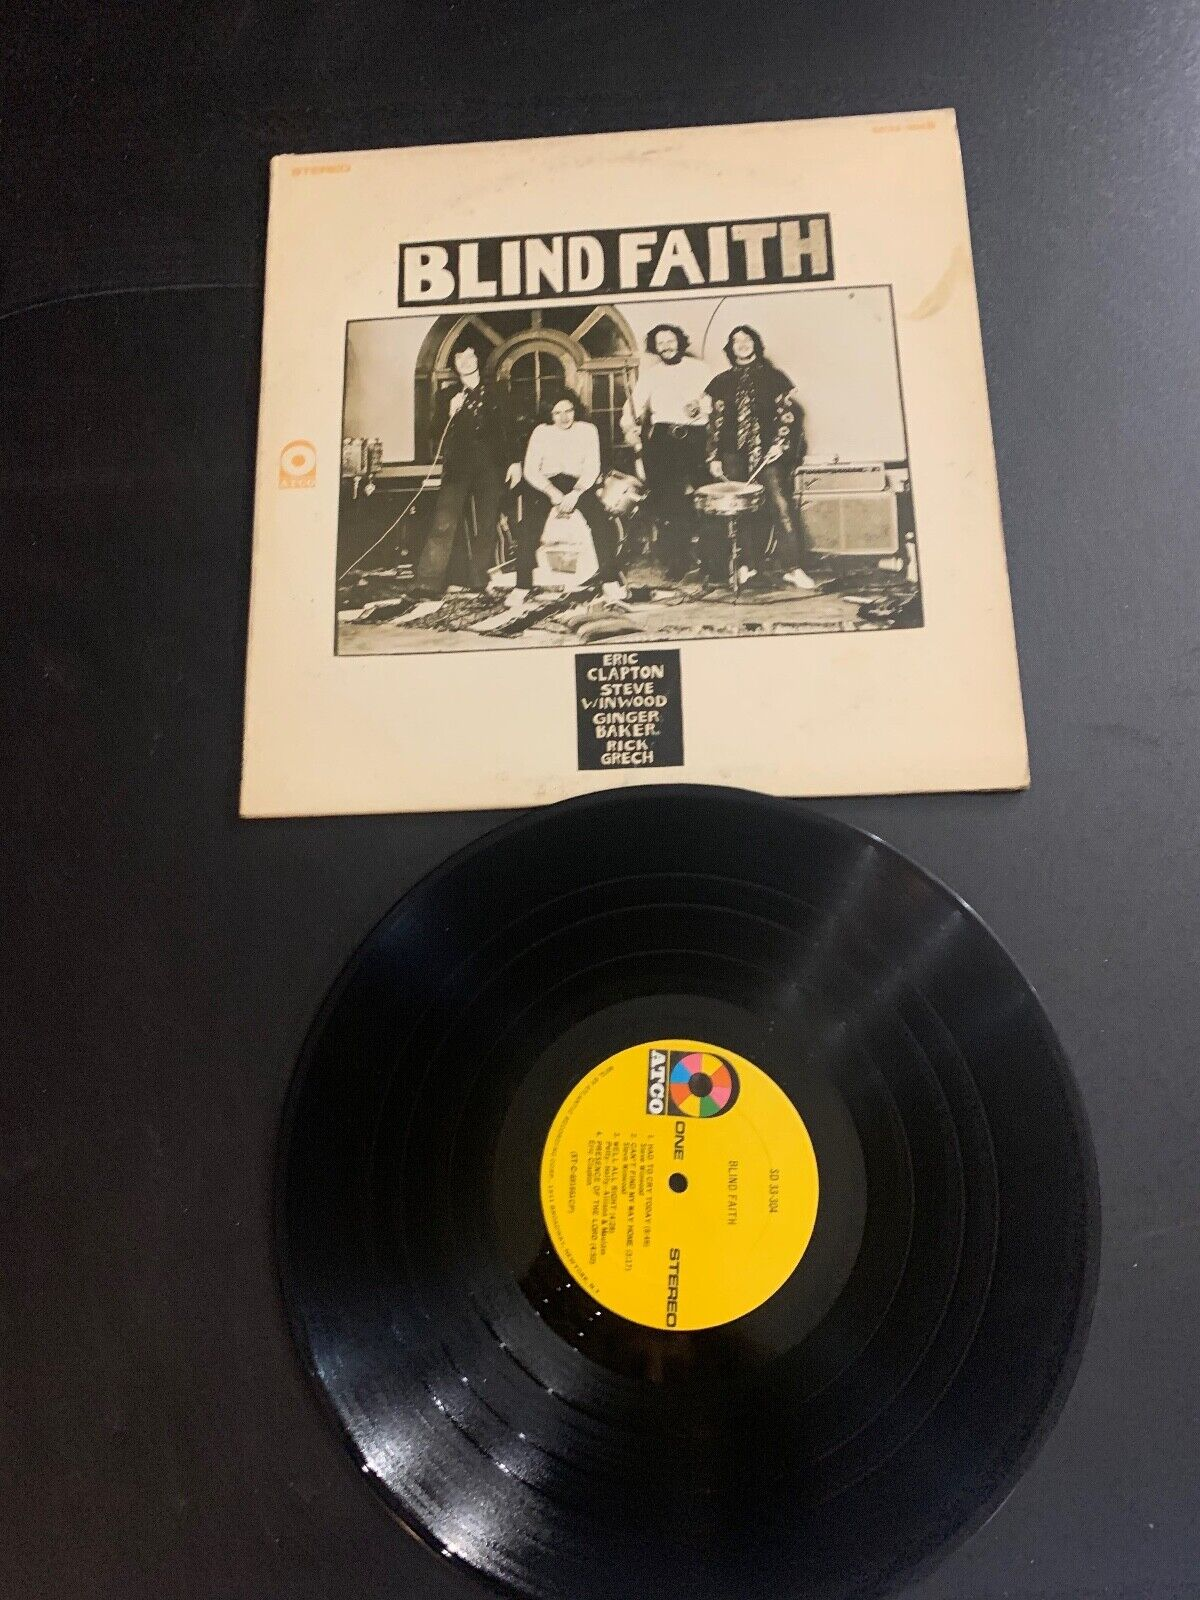 LP RECORD - BLIND FAITH - SELF TITLE - ATCO RECORDS - WINDWOOD CLAPTON GRECH  - $9.99